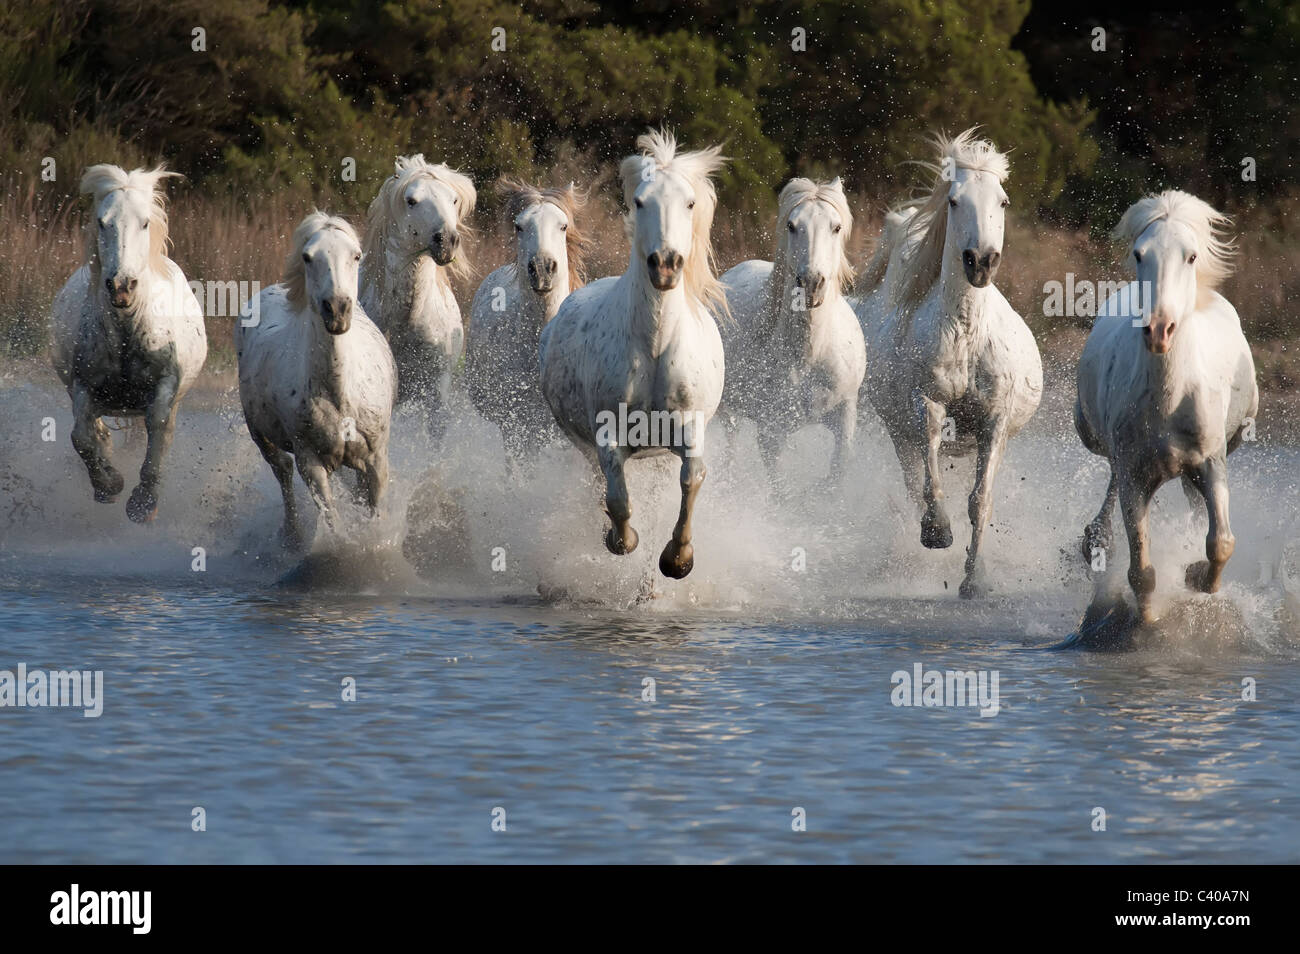 horse race in a pond in the Camargue of southern France - Stock Image